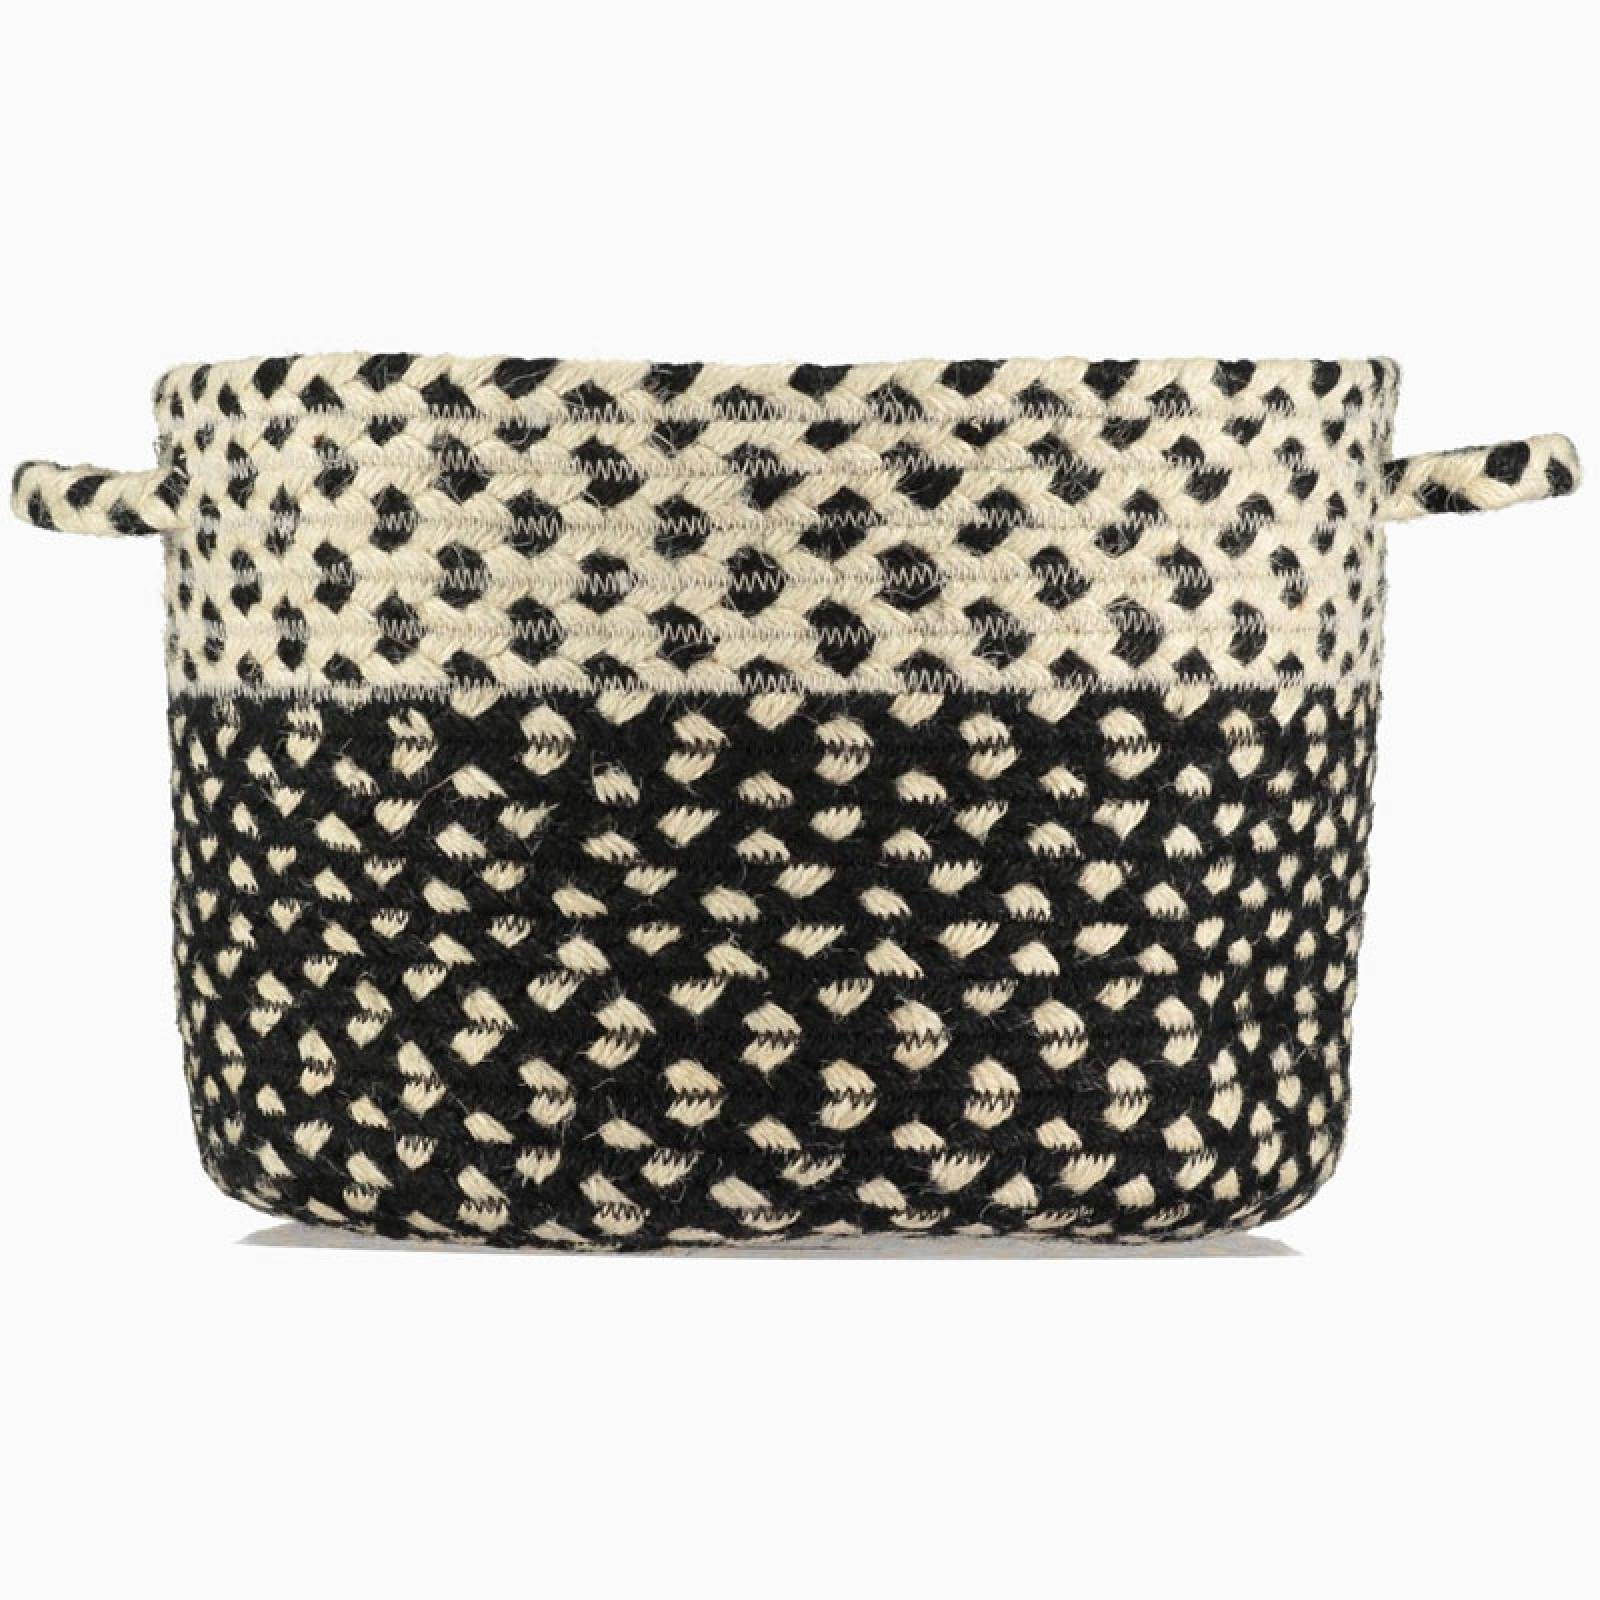 Black And White Small Two Tone  Woven Basket With Handles 23x18